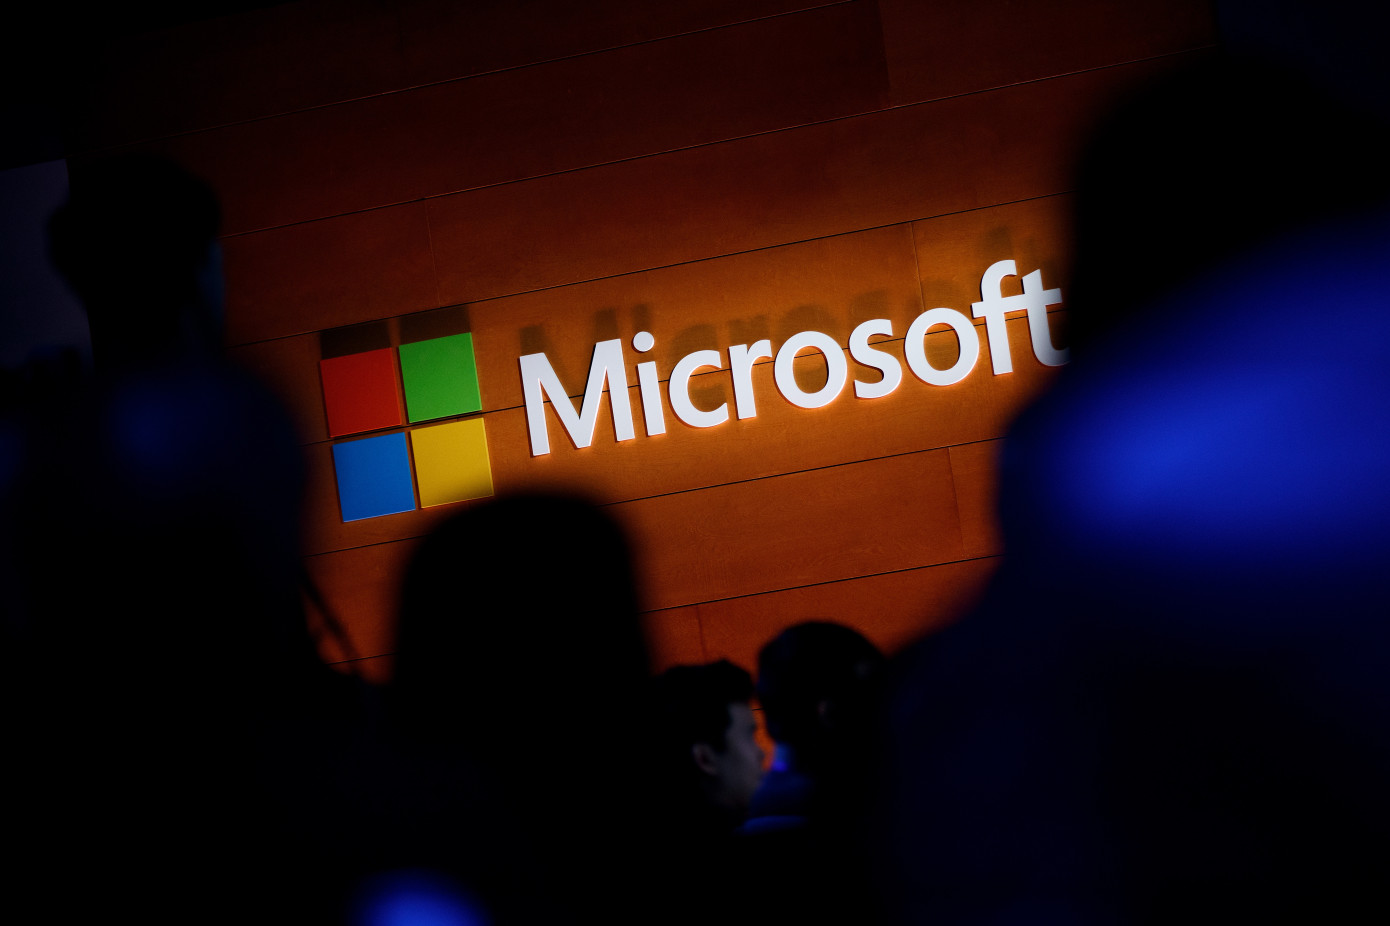 Microsoft creates a text-to-speech Artificial Intelligence that can